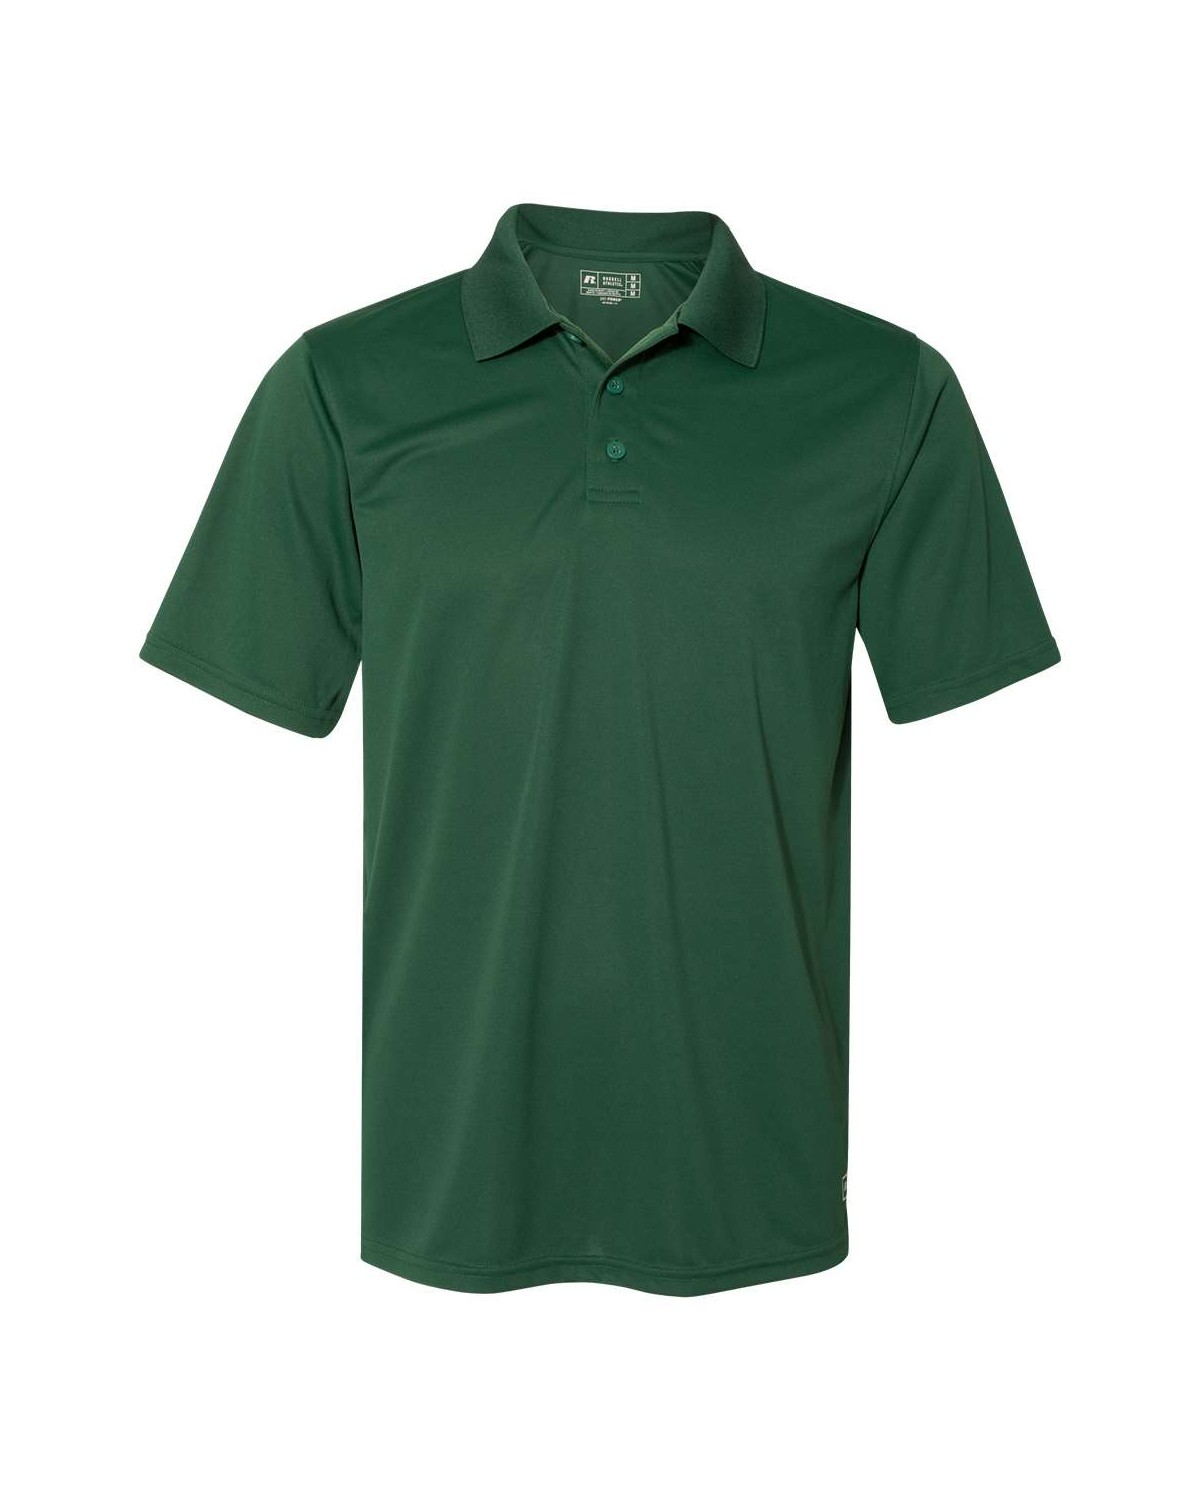 7EPTUM Russell Athletic DARK GREEN